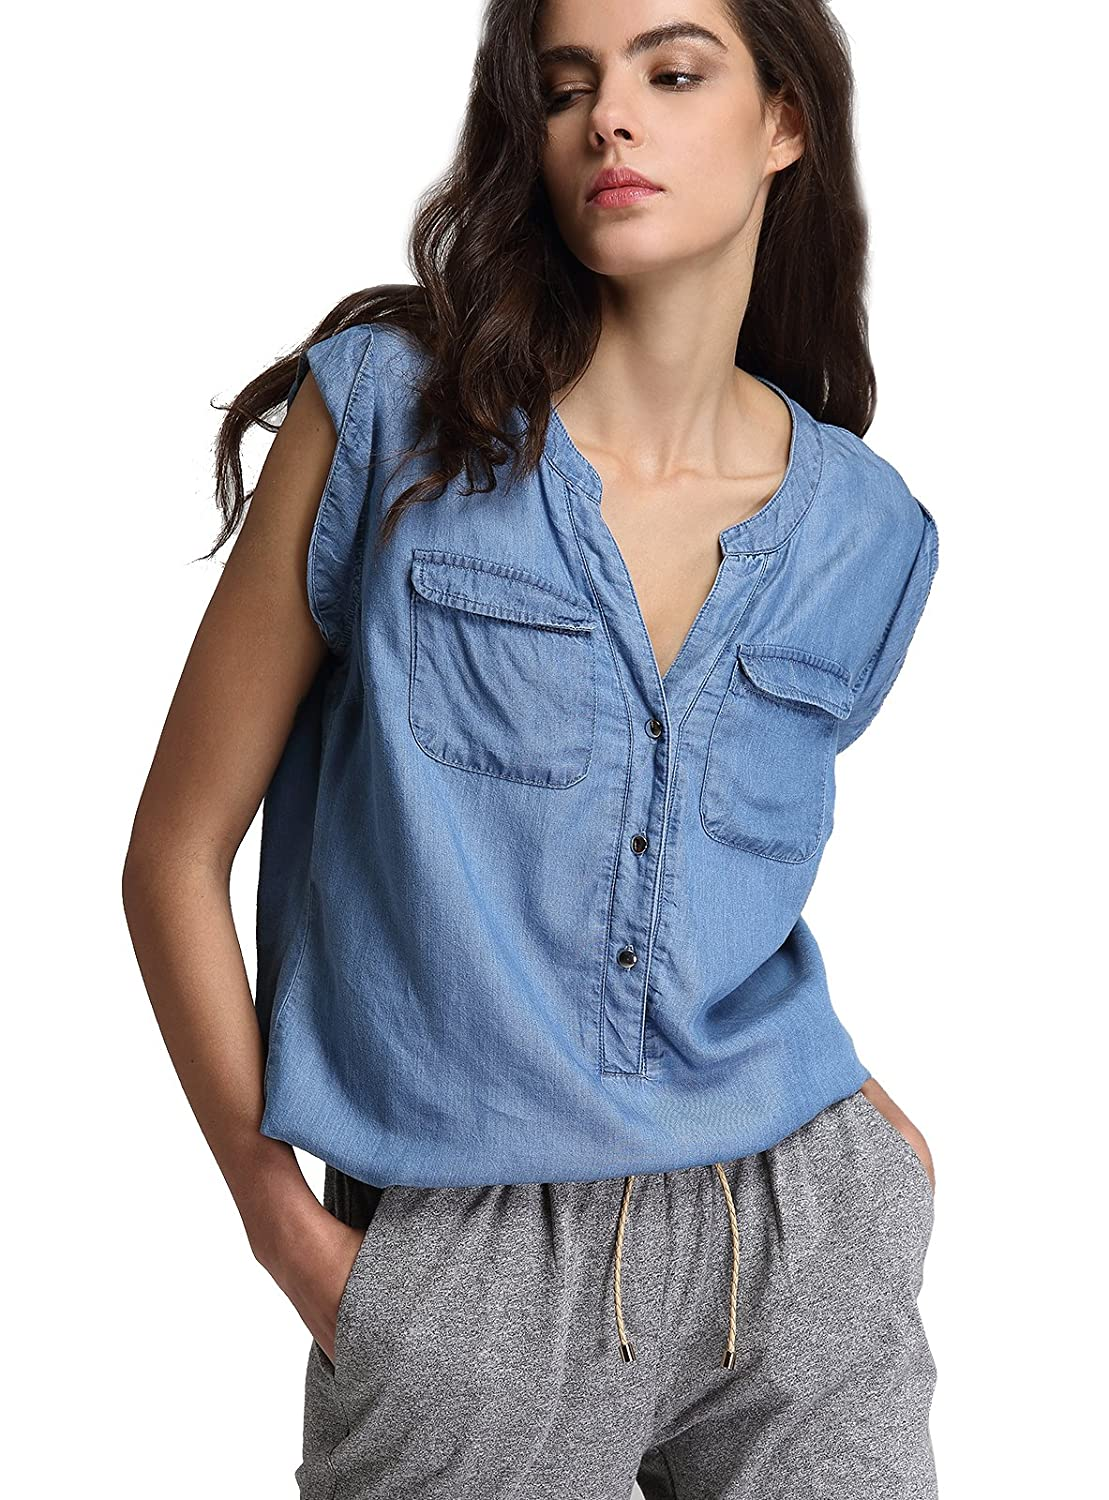 a933313d5 A classic tencel chambray casual style sleeveless denim shirt/blouse.  Feature:V-neck,Two front patch pockets,sleeveless western western denim  shirt